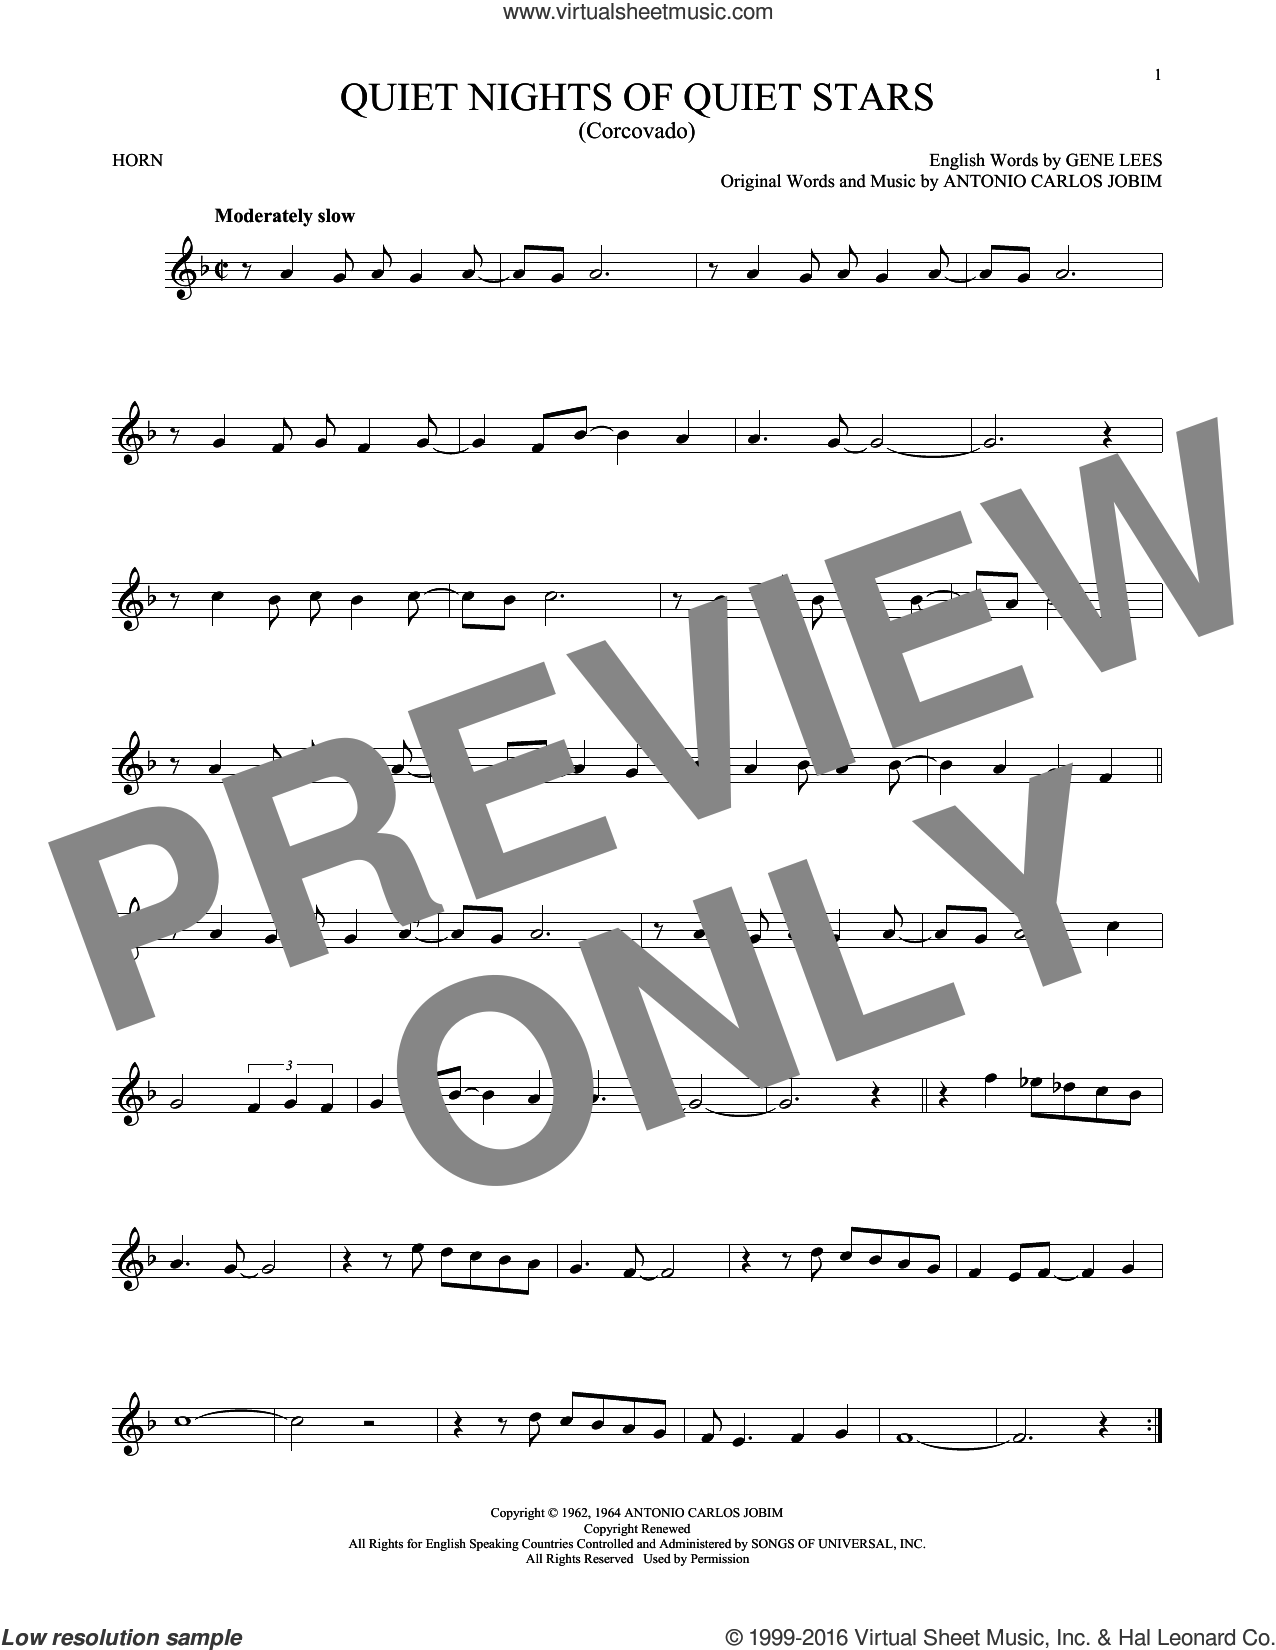 Quiet Nights Of Quiet Stars (Corcovado) sheet music for horn solo by Andy Williams, Antonio Carlos Jobim and Eugene John Lees, intermediate skill level